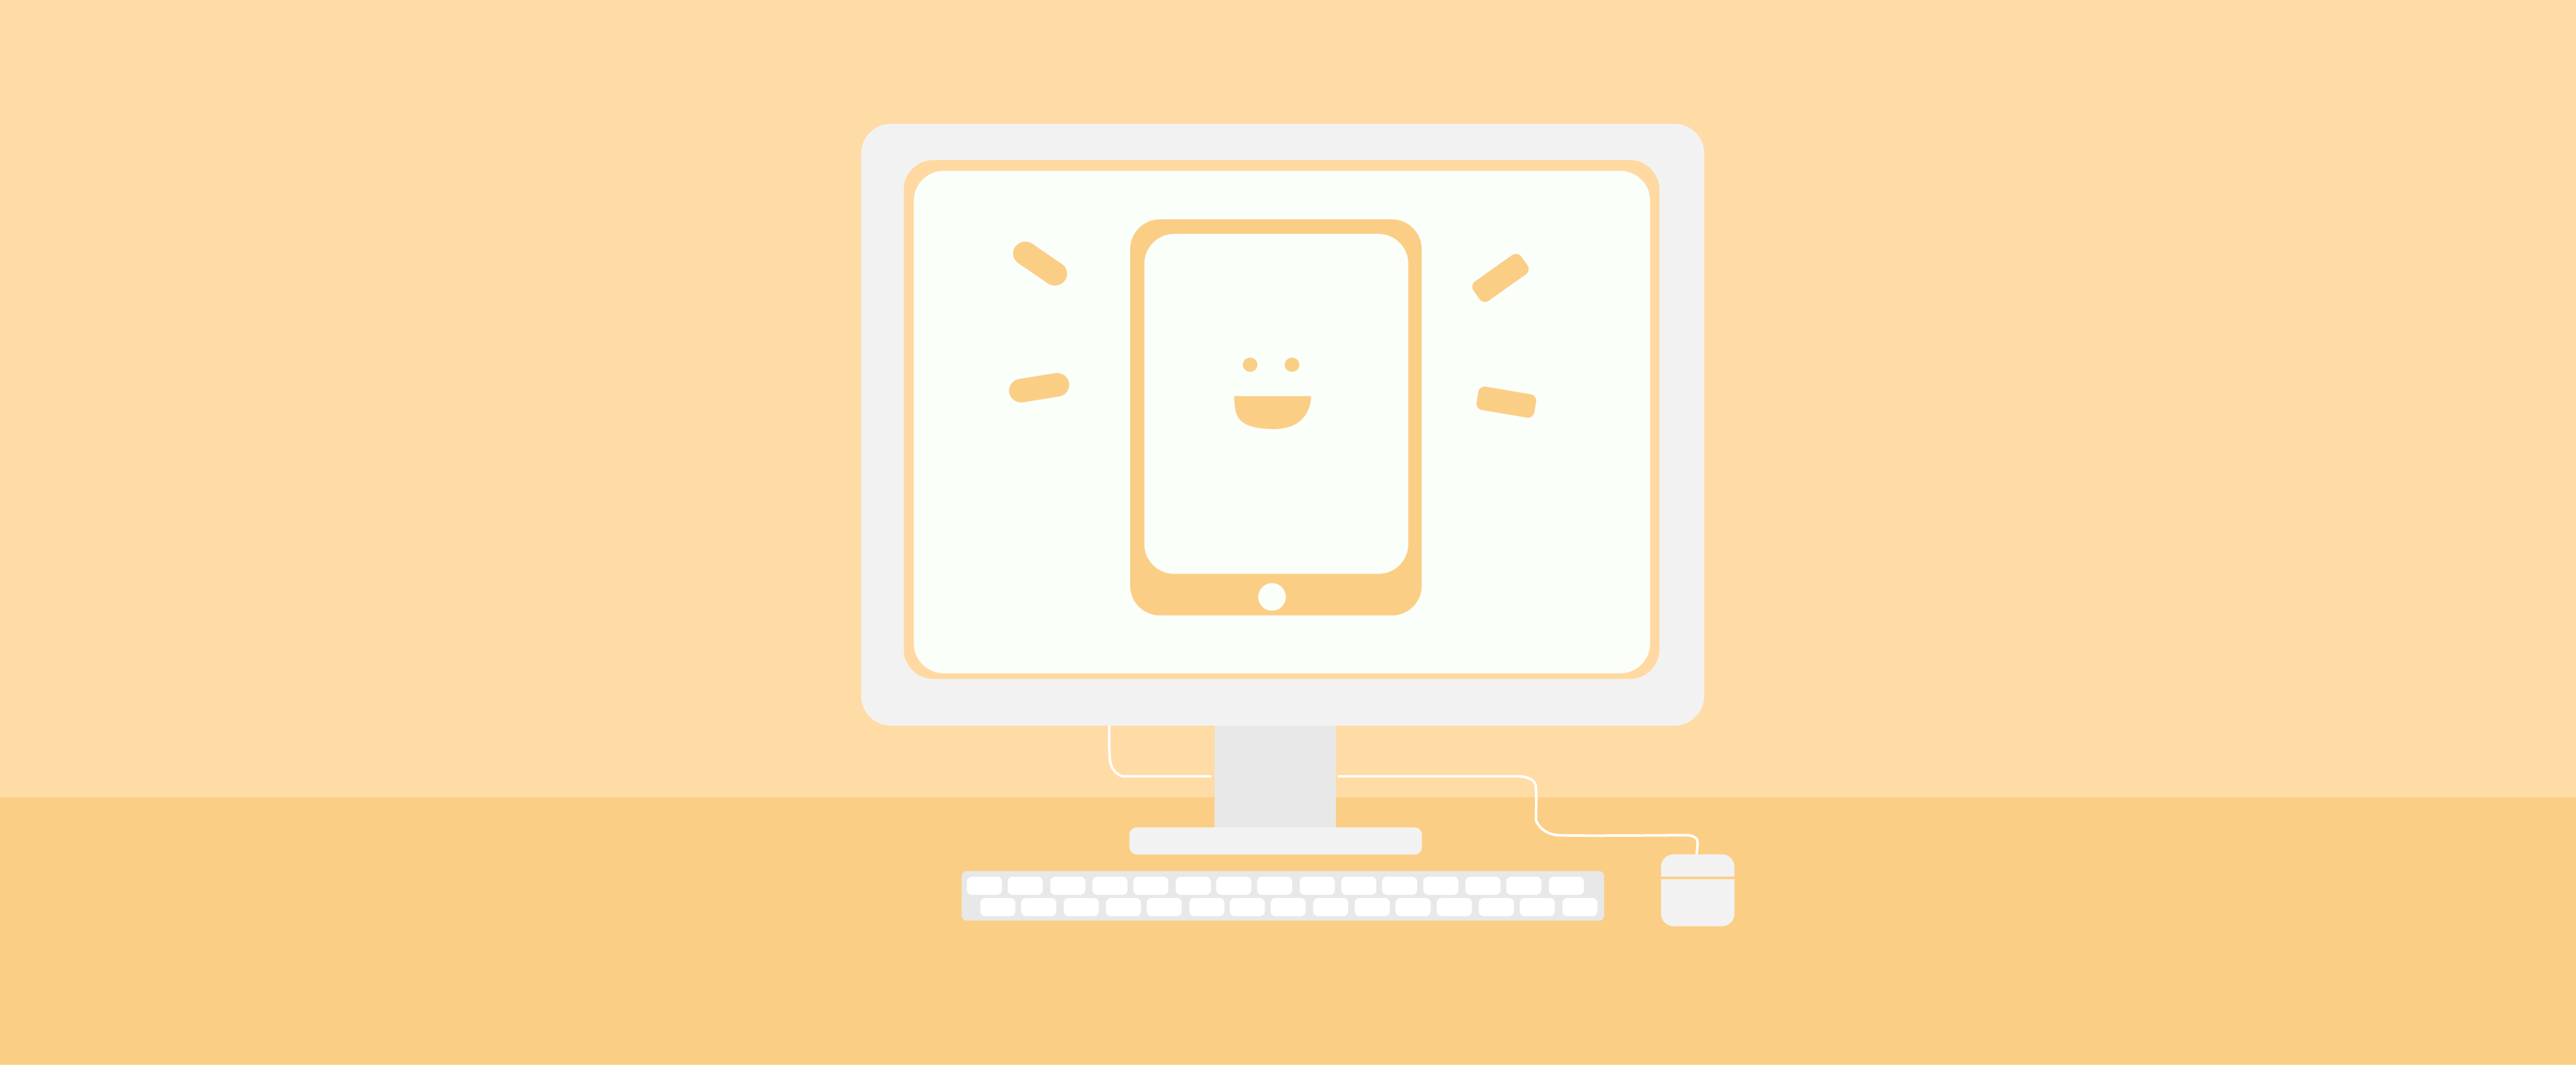 How To Add An iPhone And iPad Icon for Your Website